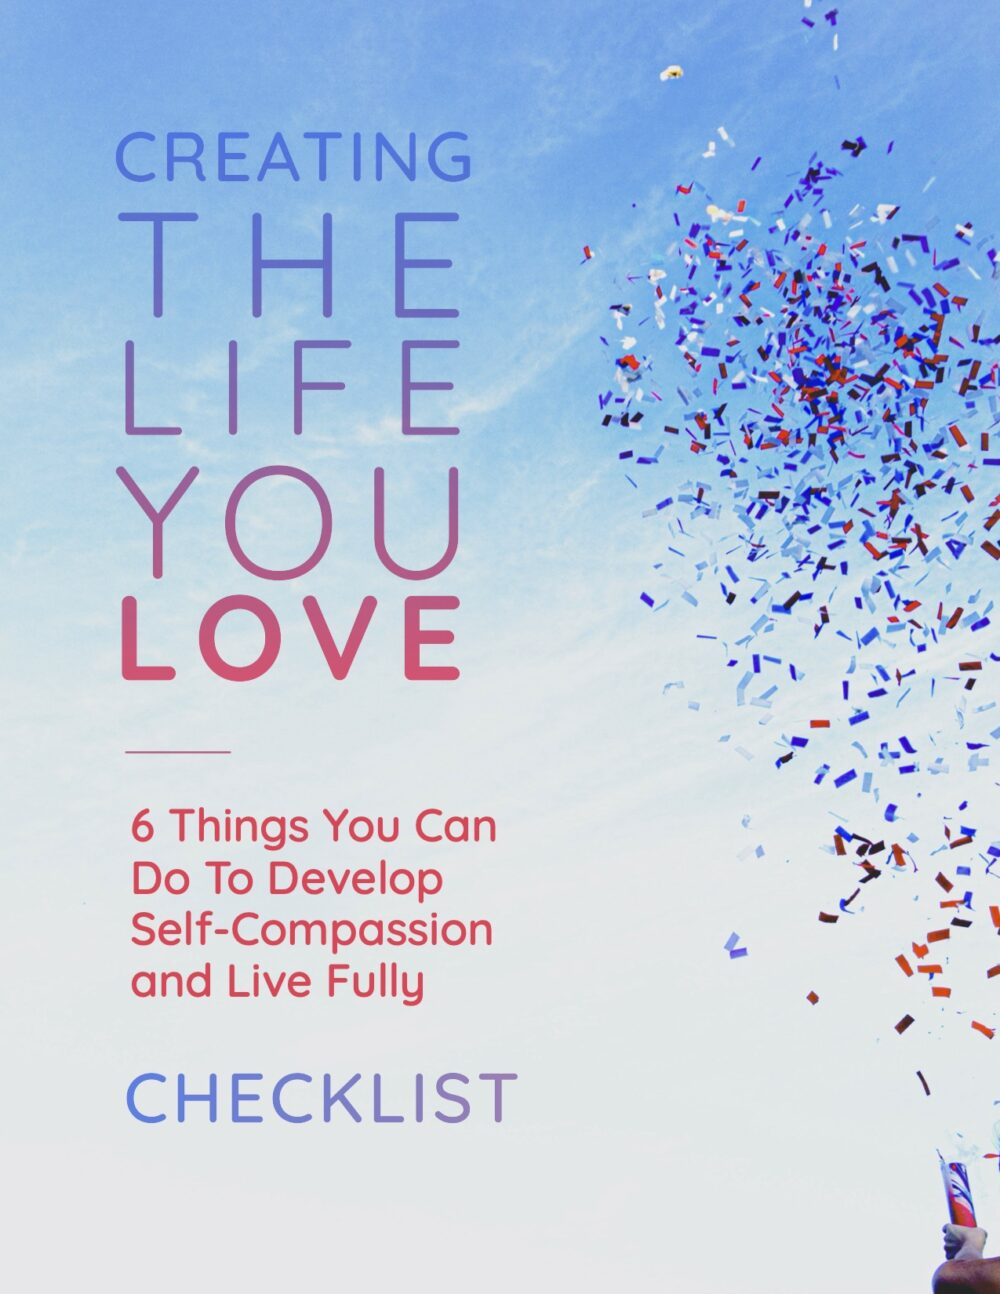 Creating The Life You Love - Checklist